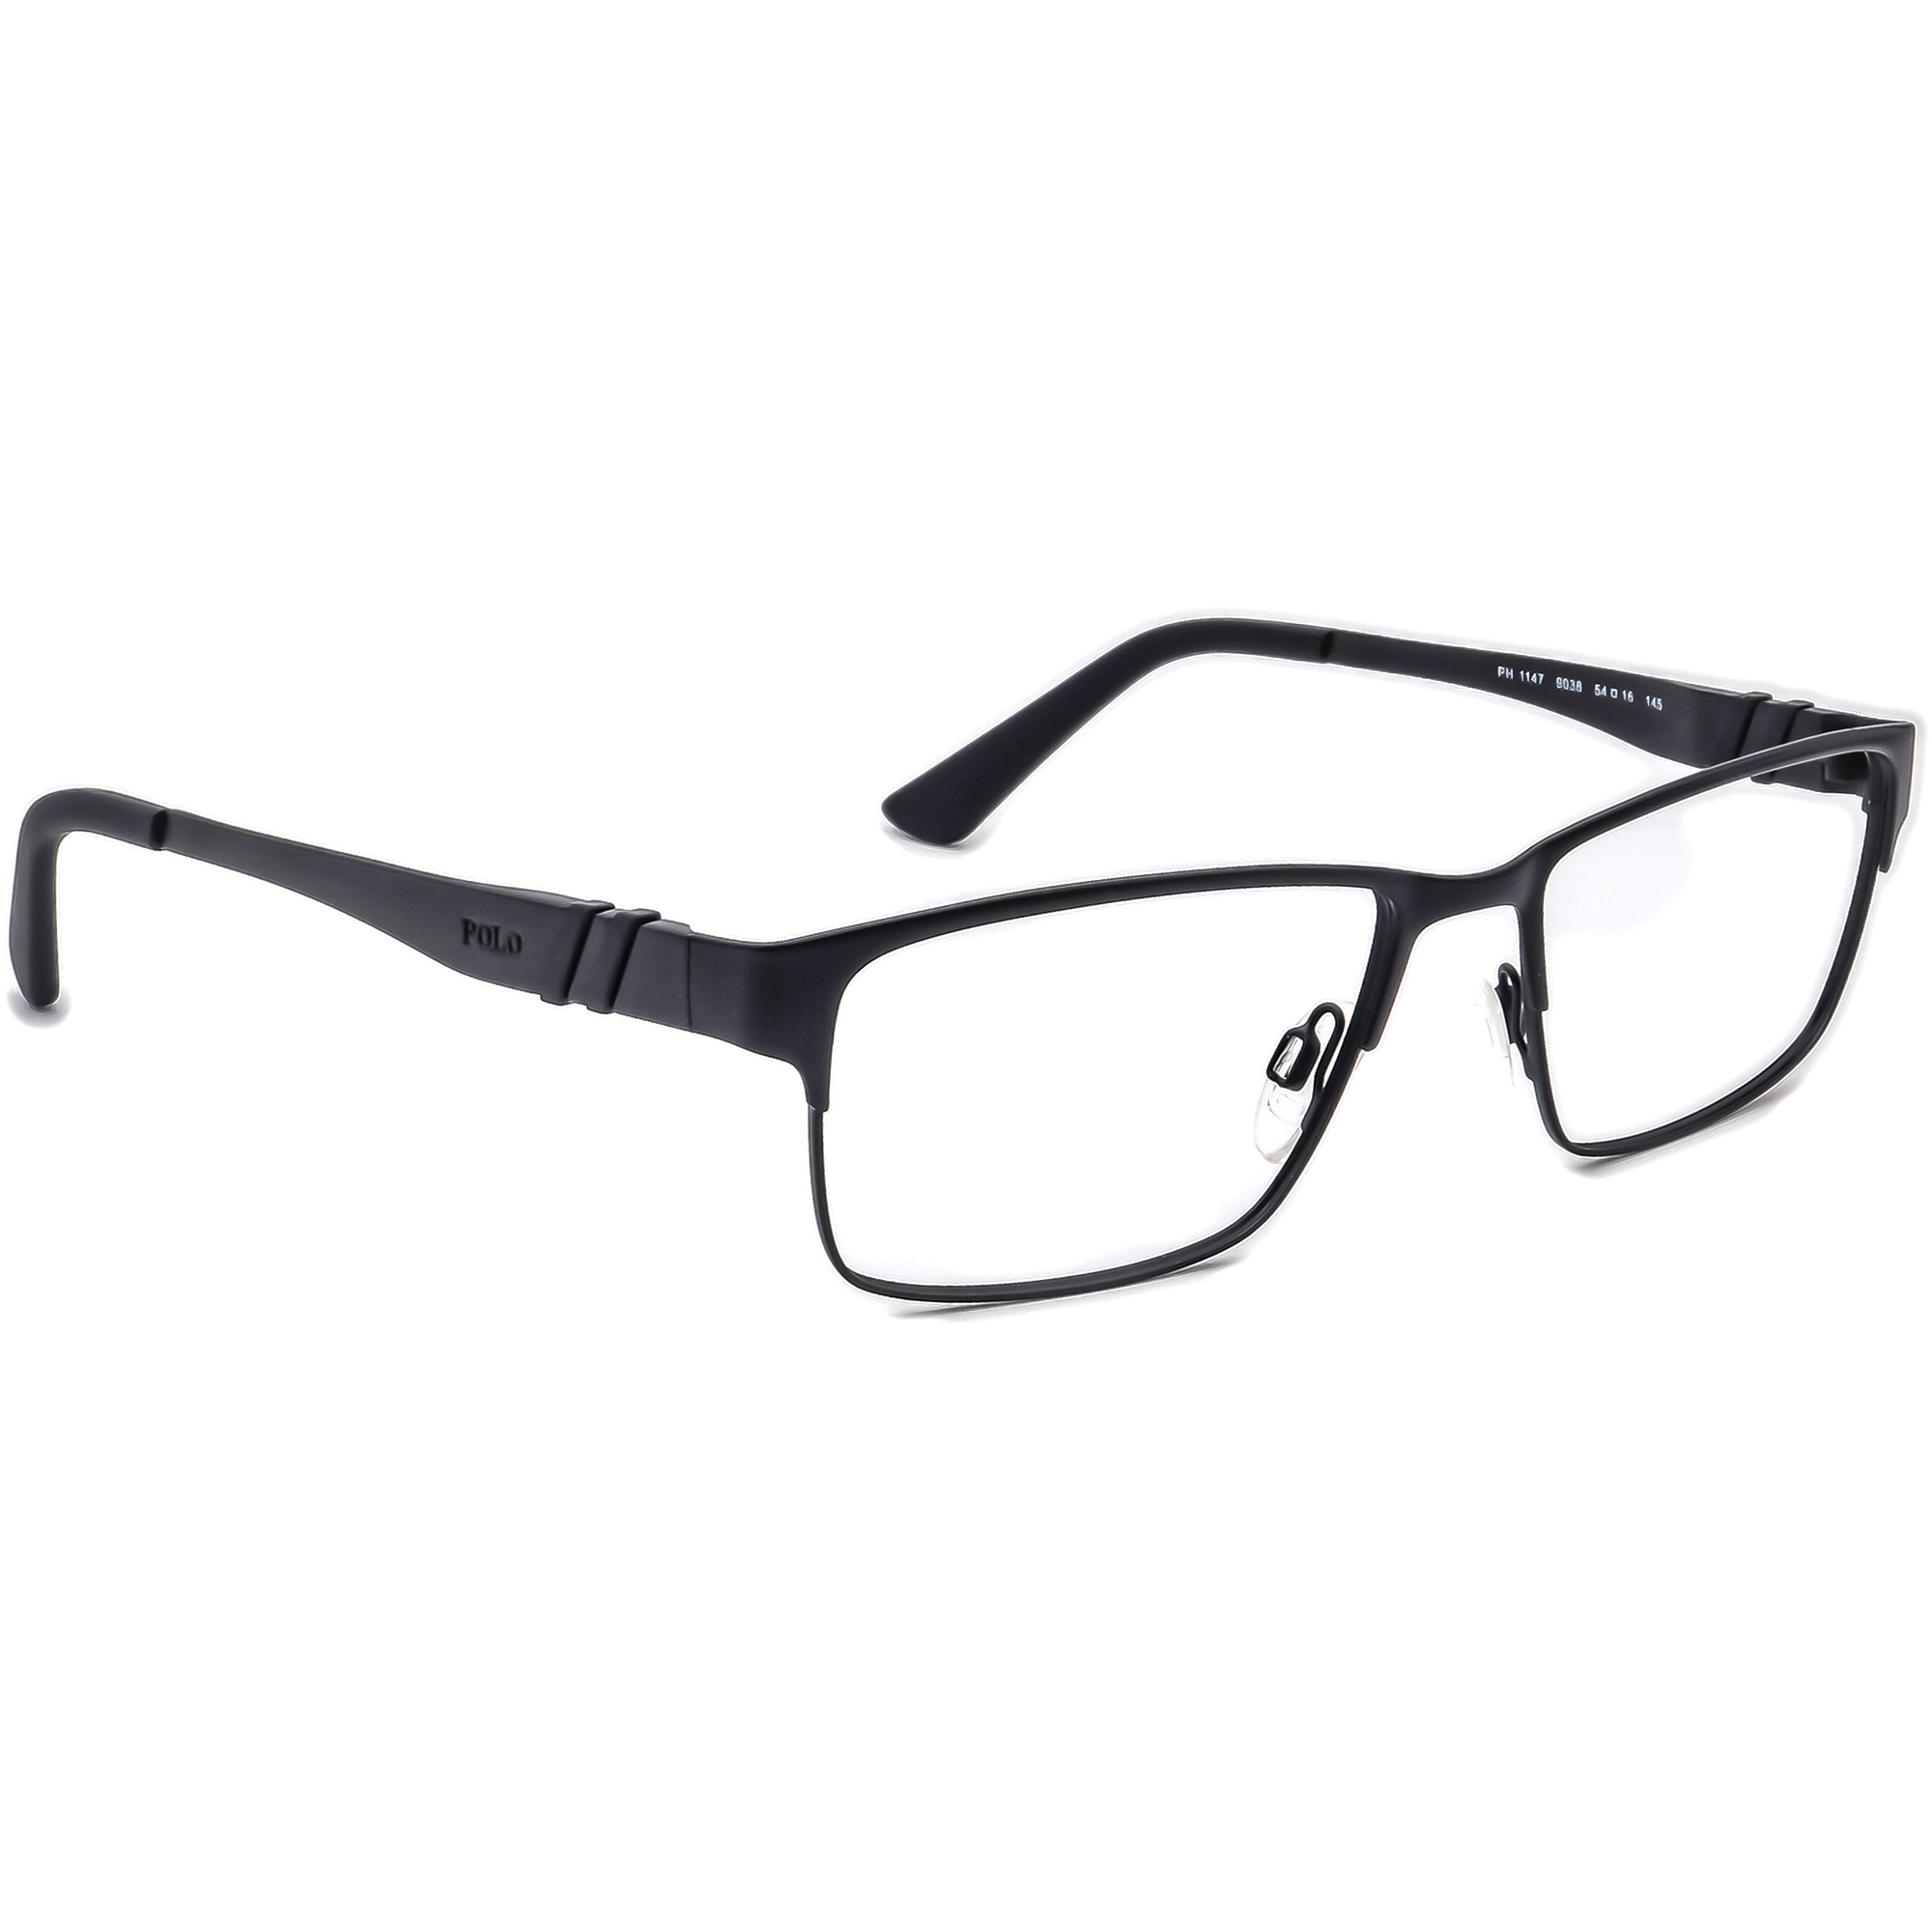 Ralph Lauren Polo PH 1147 9038 Eyeglasses